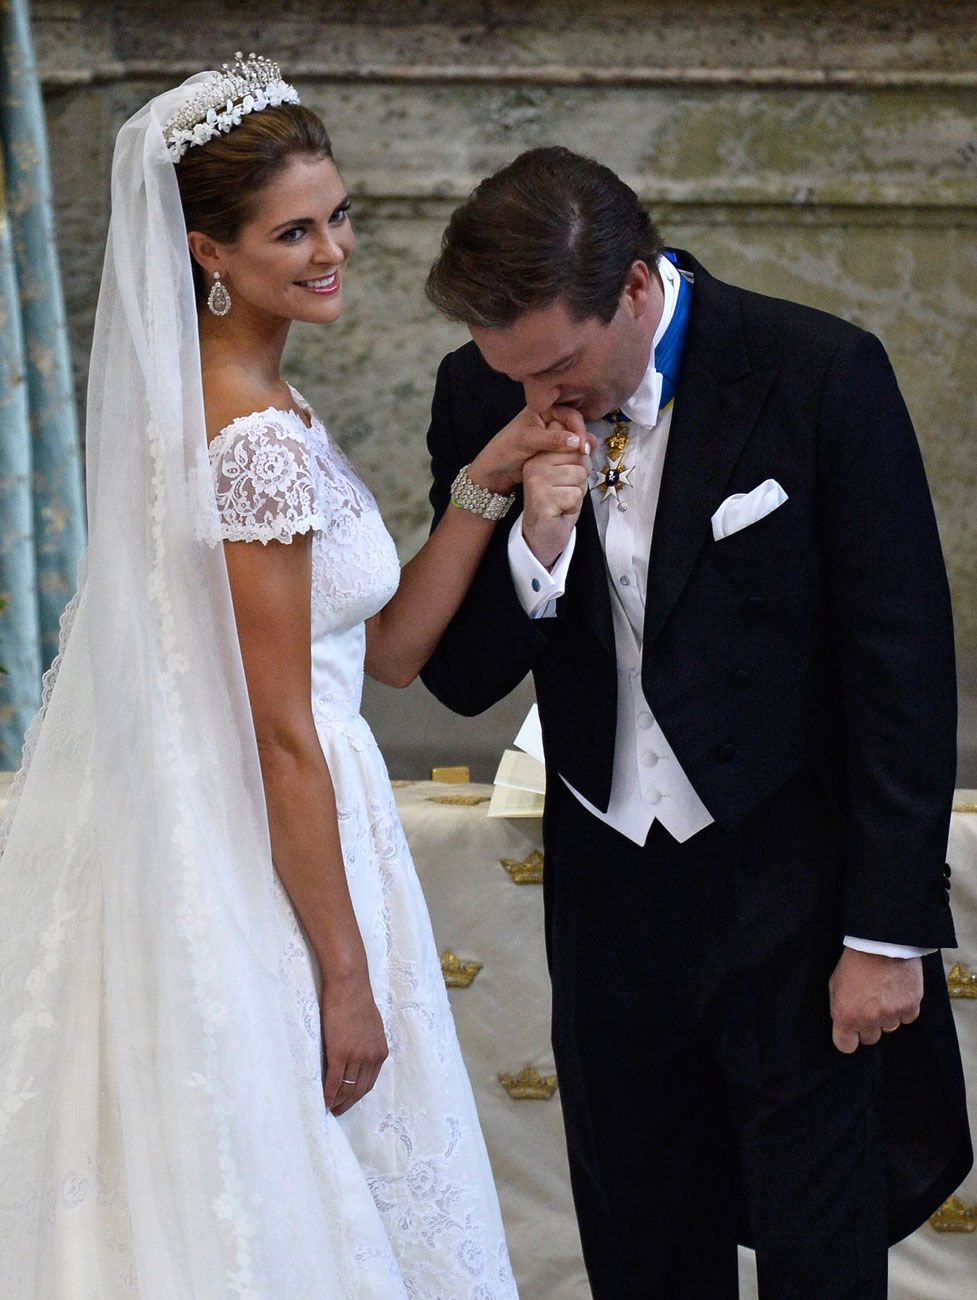 Photos Photos Europe S Tackiest And Most Tasteful Society Weddings Happen Within Four Days Royal Wedding Dress Princess Madeleine Wedding Dresses [ 1300 x 977 Pixel ]